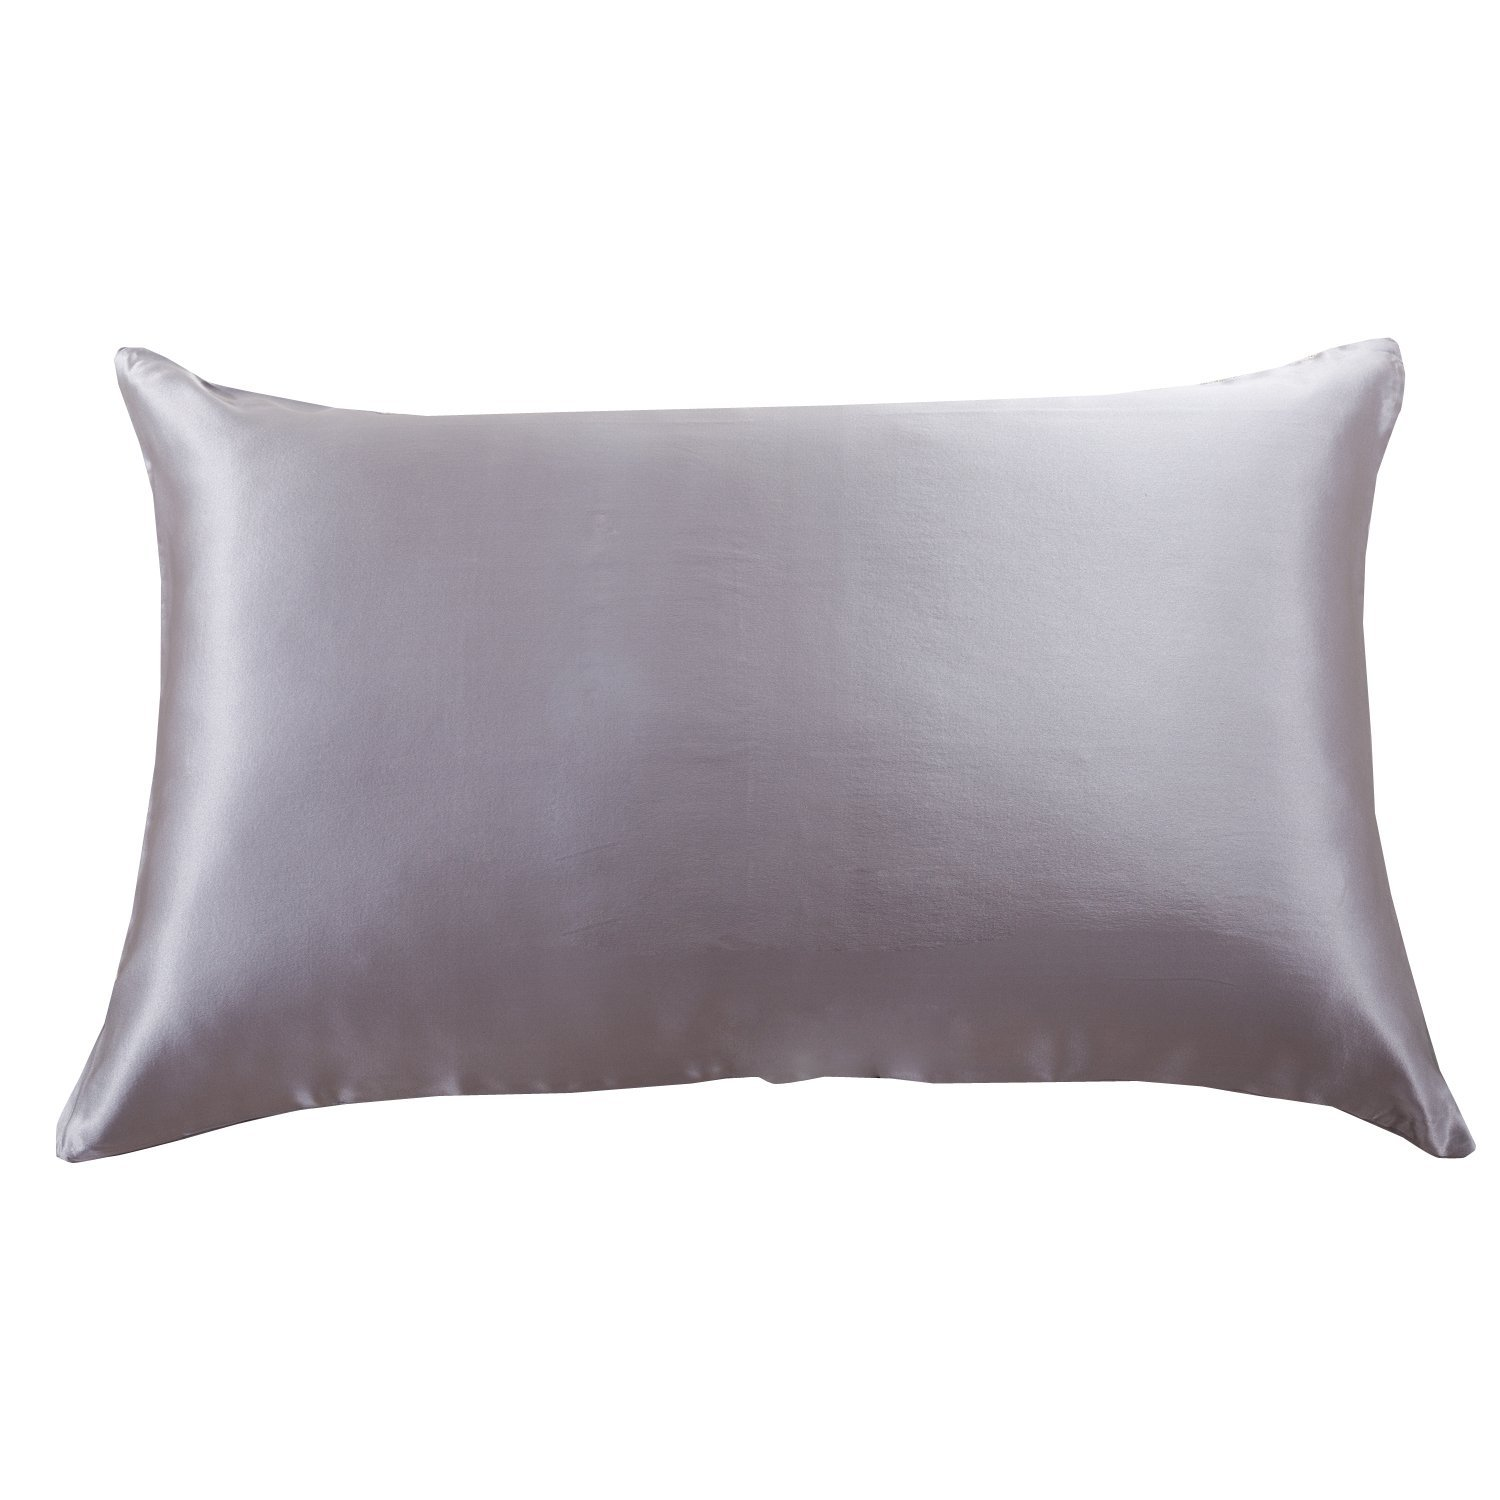 Orose 22MM Luxury Mulberry Silk Pillowcase, Good for Hair and Facial Beauty, Prevent from Wrinkle and Allergy, 100% Silk on both Sides, Gift Wrap,1Pc (Queen, sliver grey)